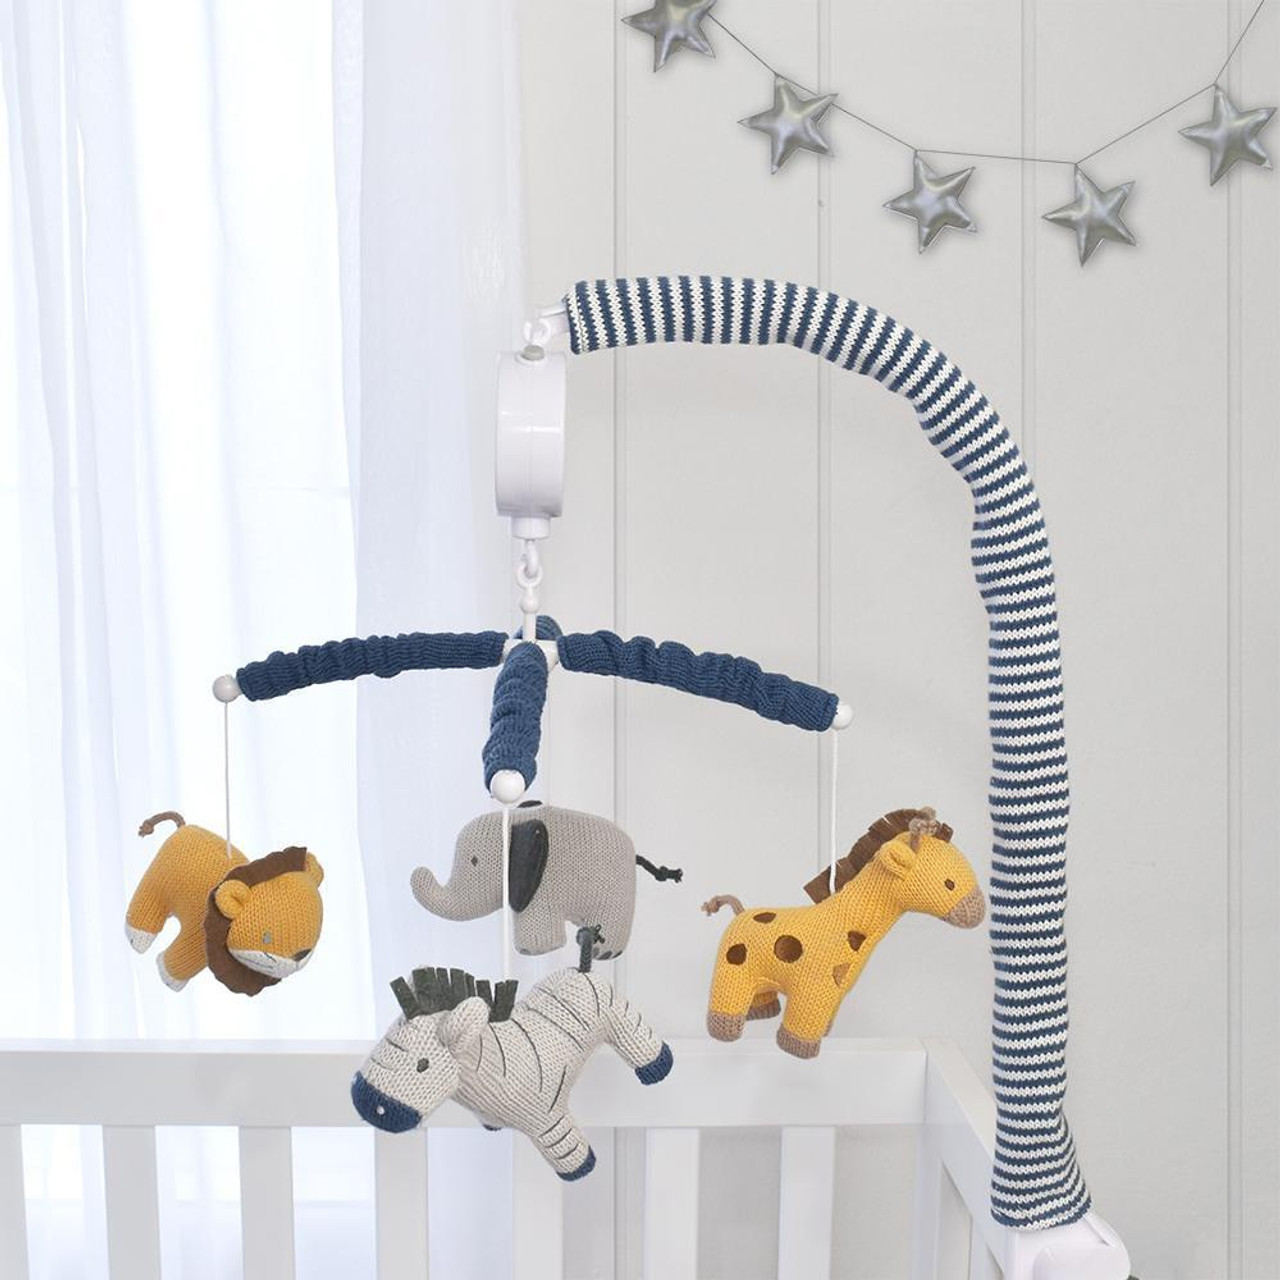 Lolli Living Battery Operated Musical Mobile Urban Safari at Baby Barn Discounts Battery operated musical cot mobile in the Lolli Living Urban safari.